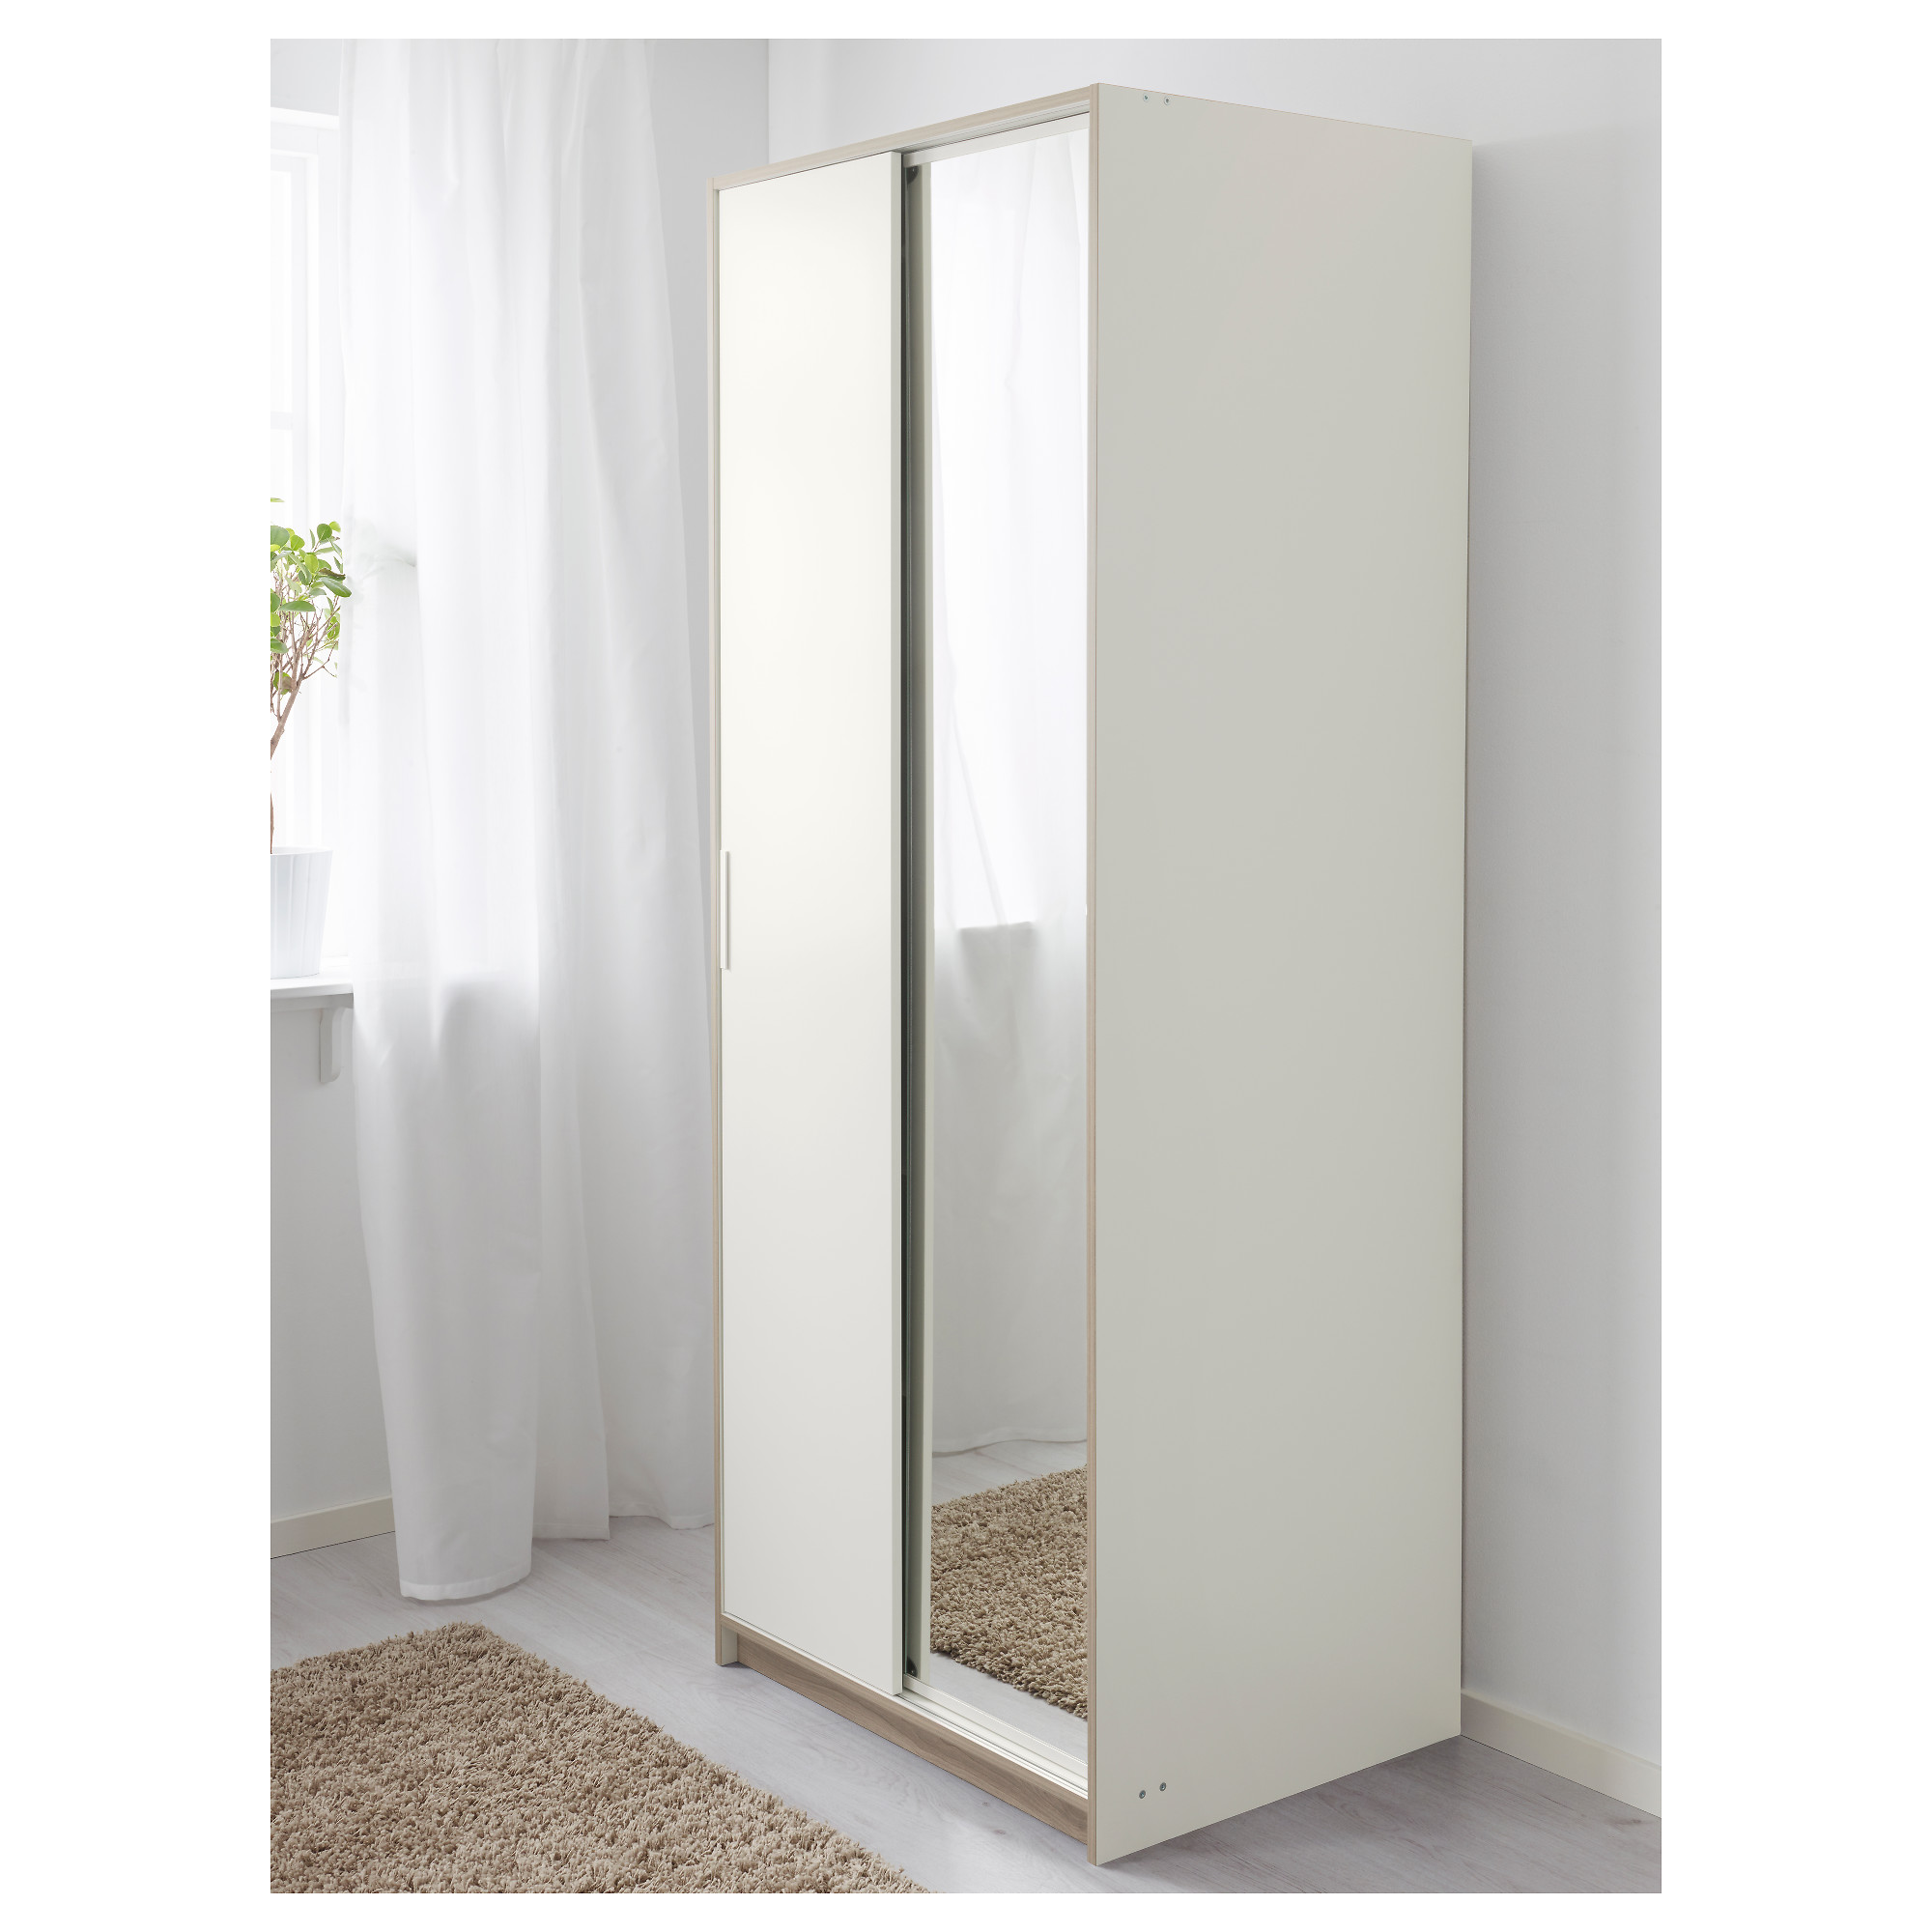 Storage Modern Closet Cabinet Design With Ikea Wardrobe